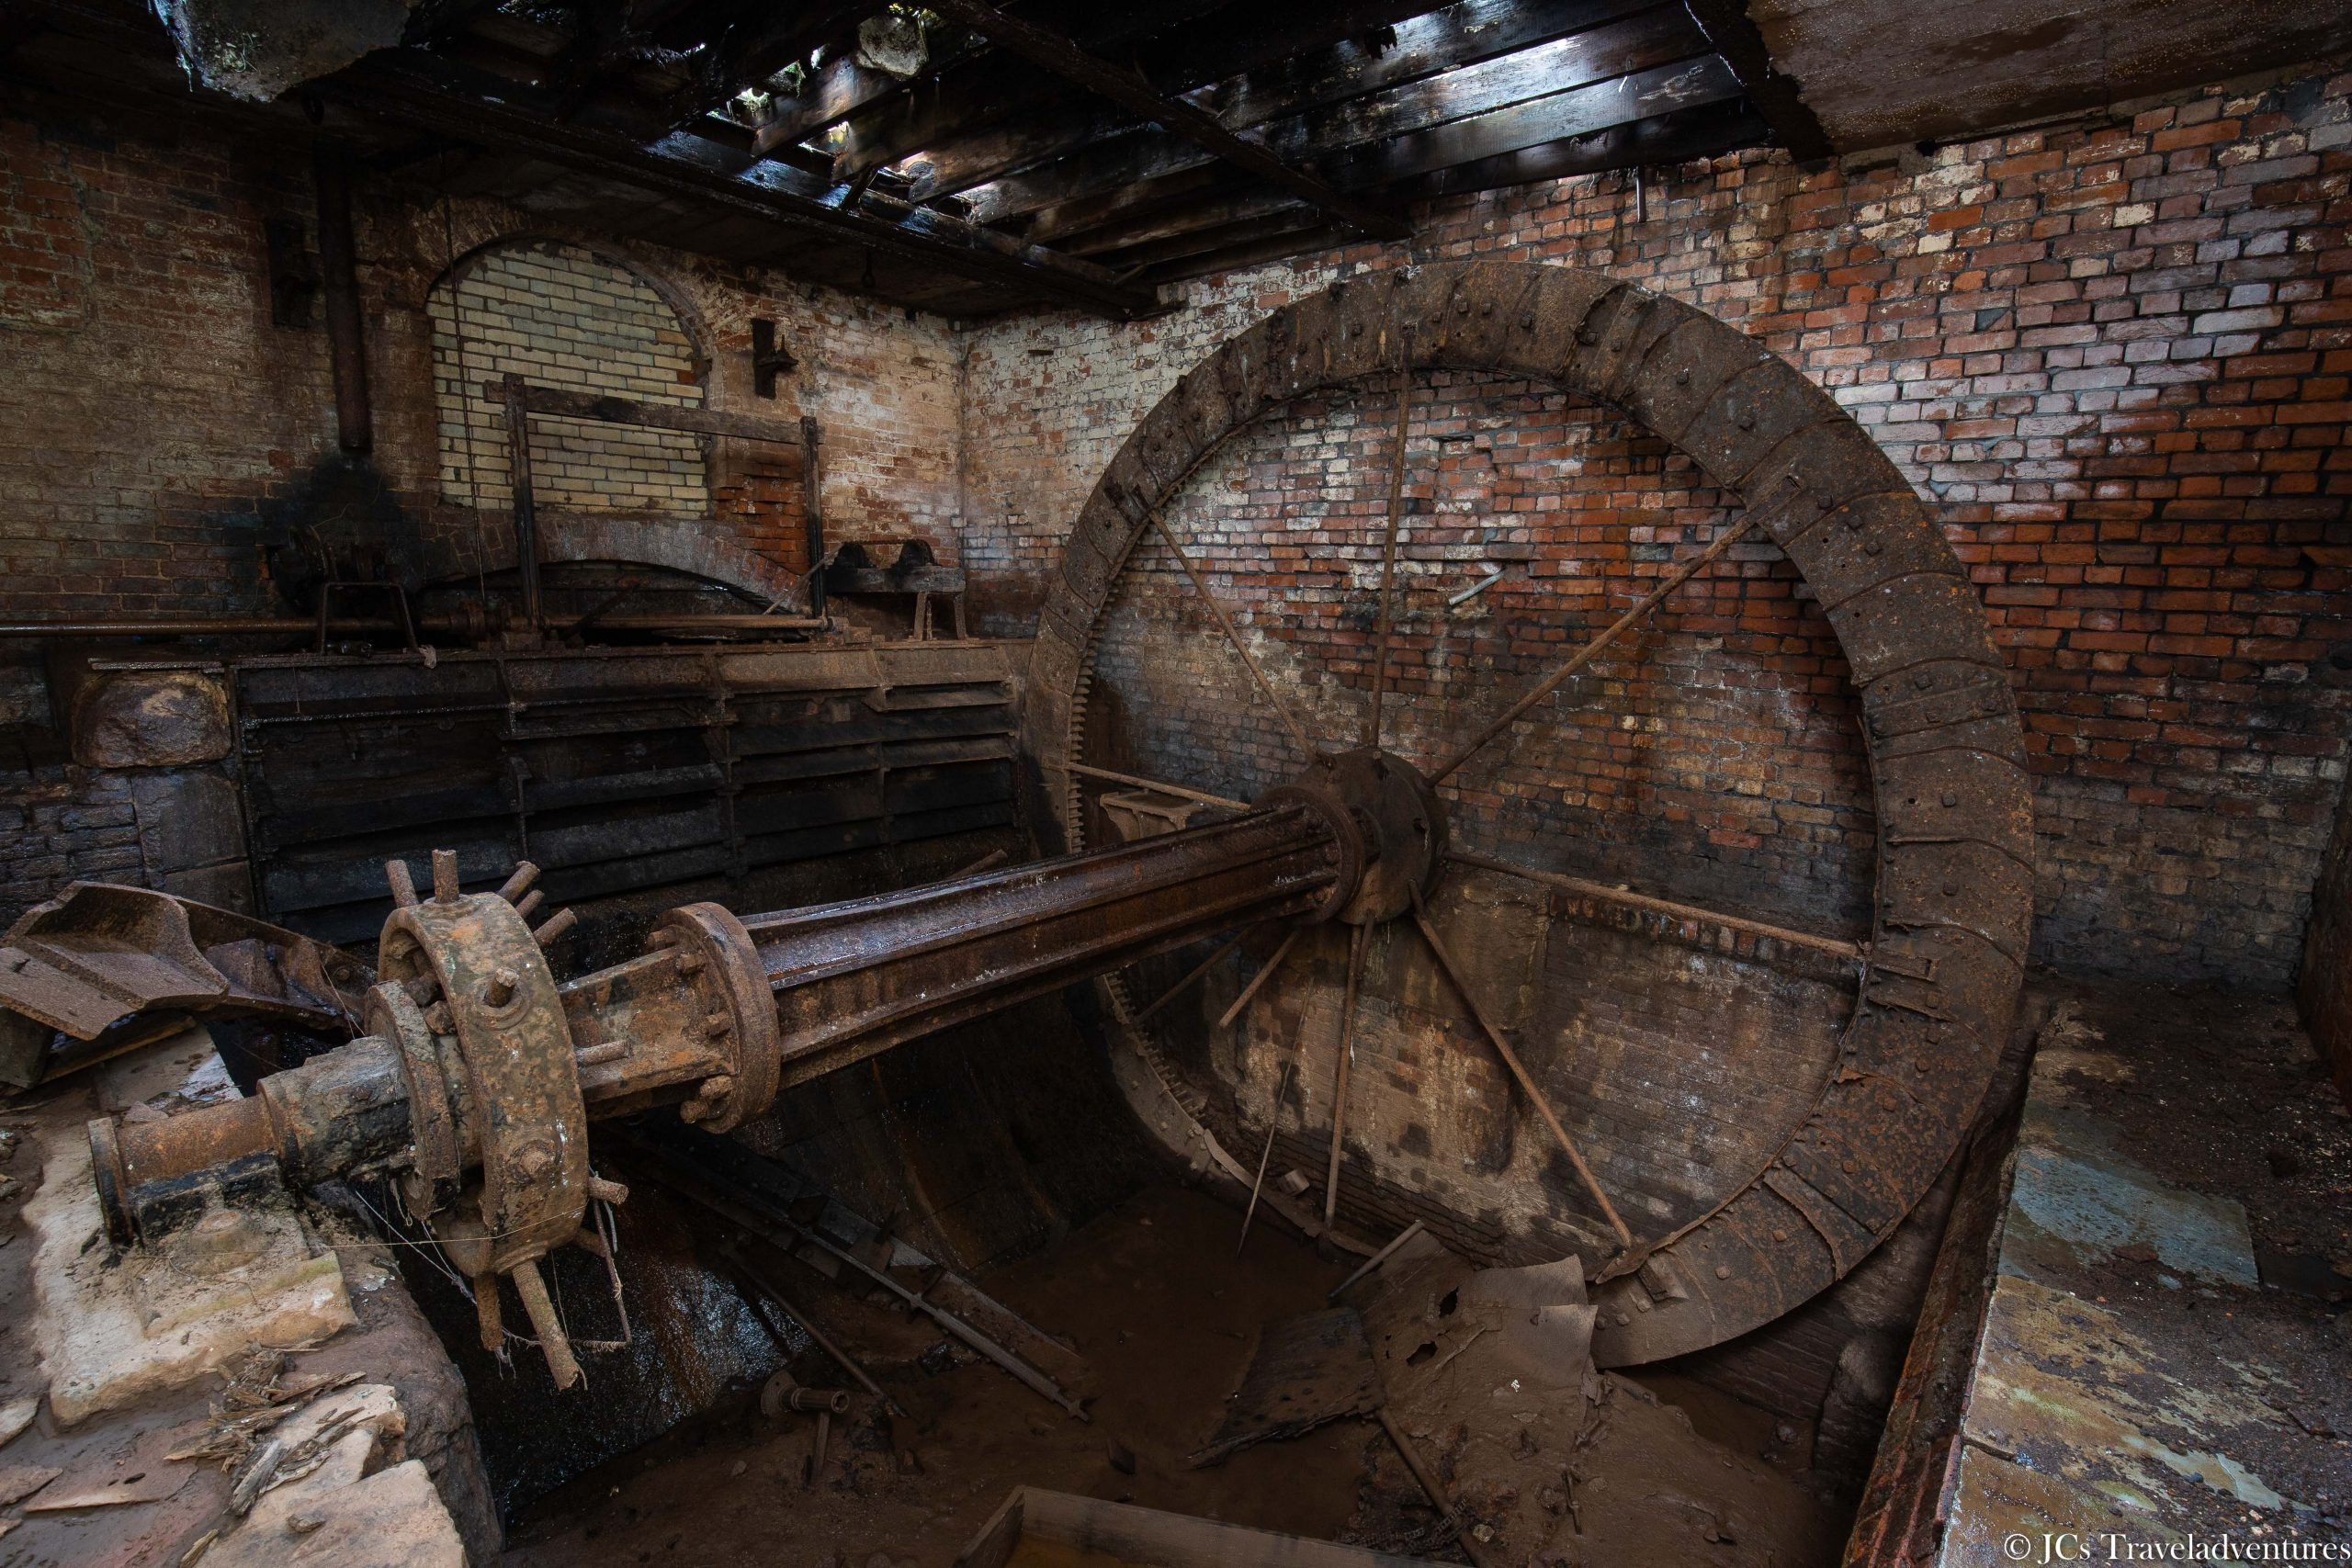 Tonedale Mill and Dying Works